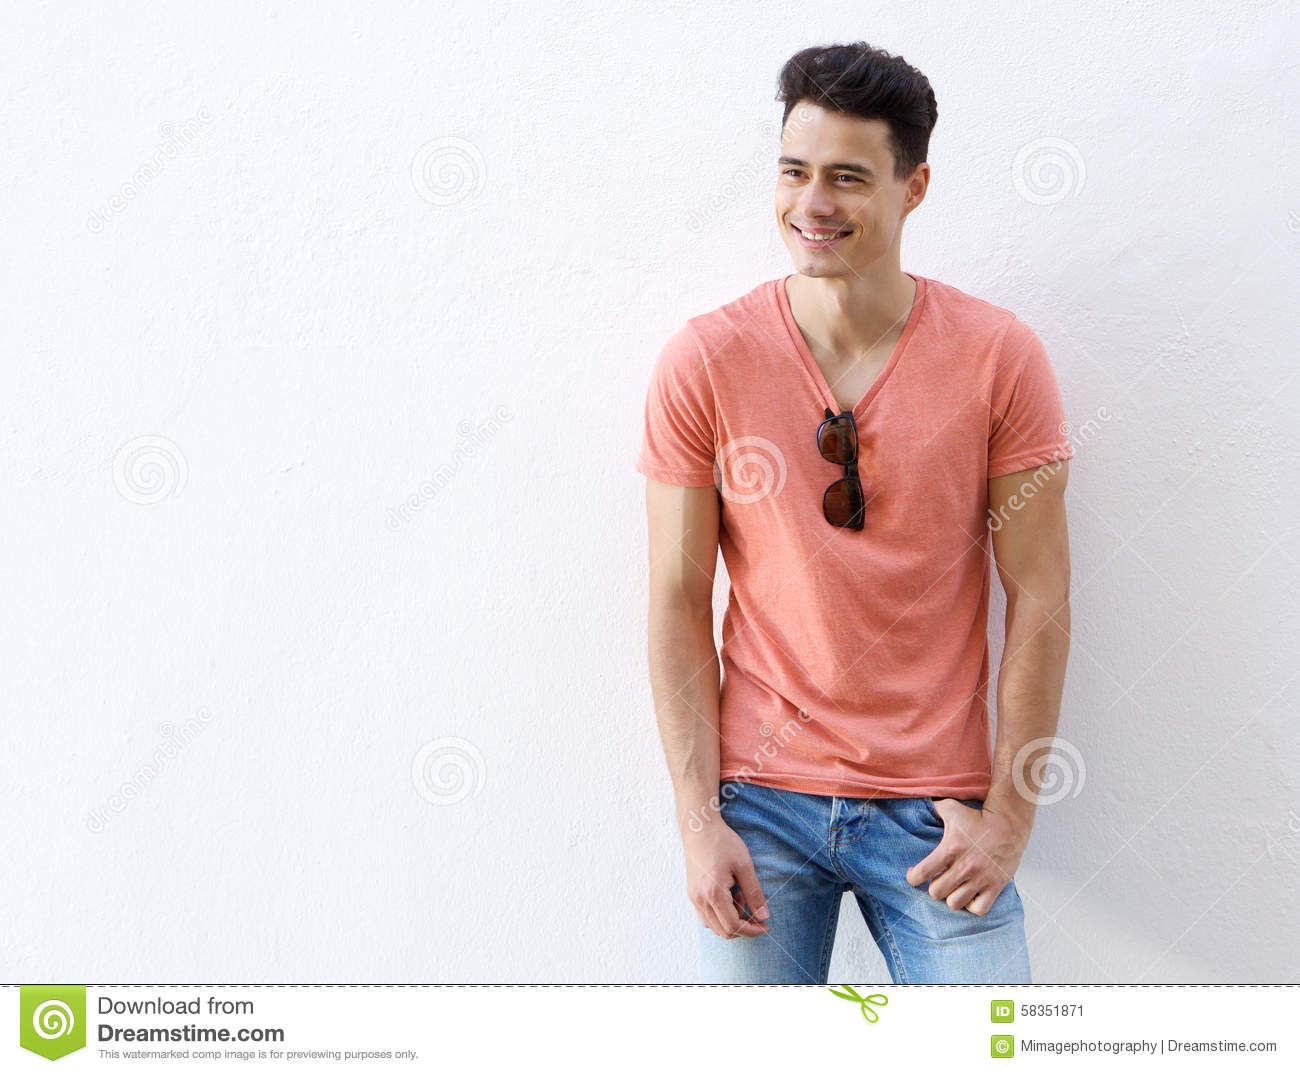 Good Looking Young Man Smiling Stock Photo - Image: 58351871  Good Looking Young Man